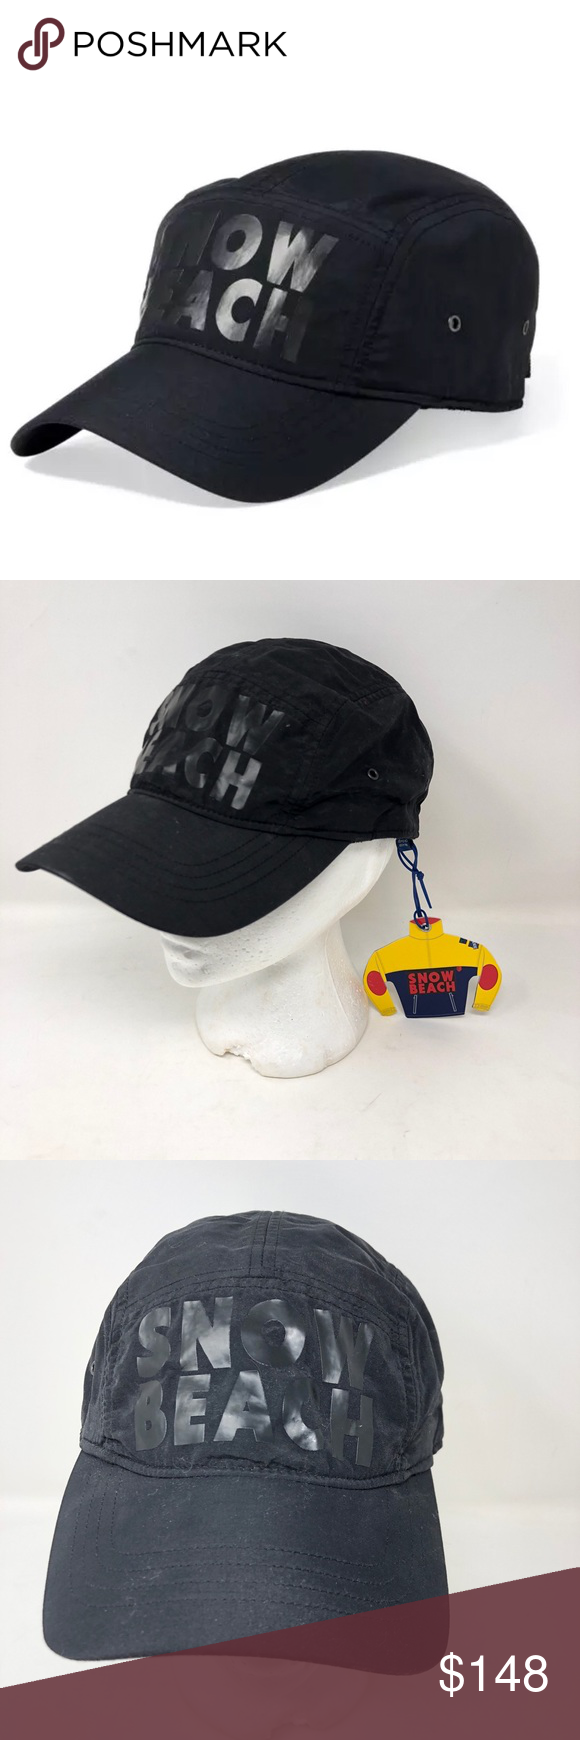 44858b8b946 Ralph Lauren Snow Beach Camp Hat Cap Cold Wave Ralph Lauren Snow Beach Camp  Hat   Cap Black Cold Wave Limited release Rare New